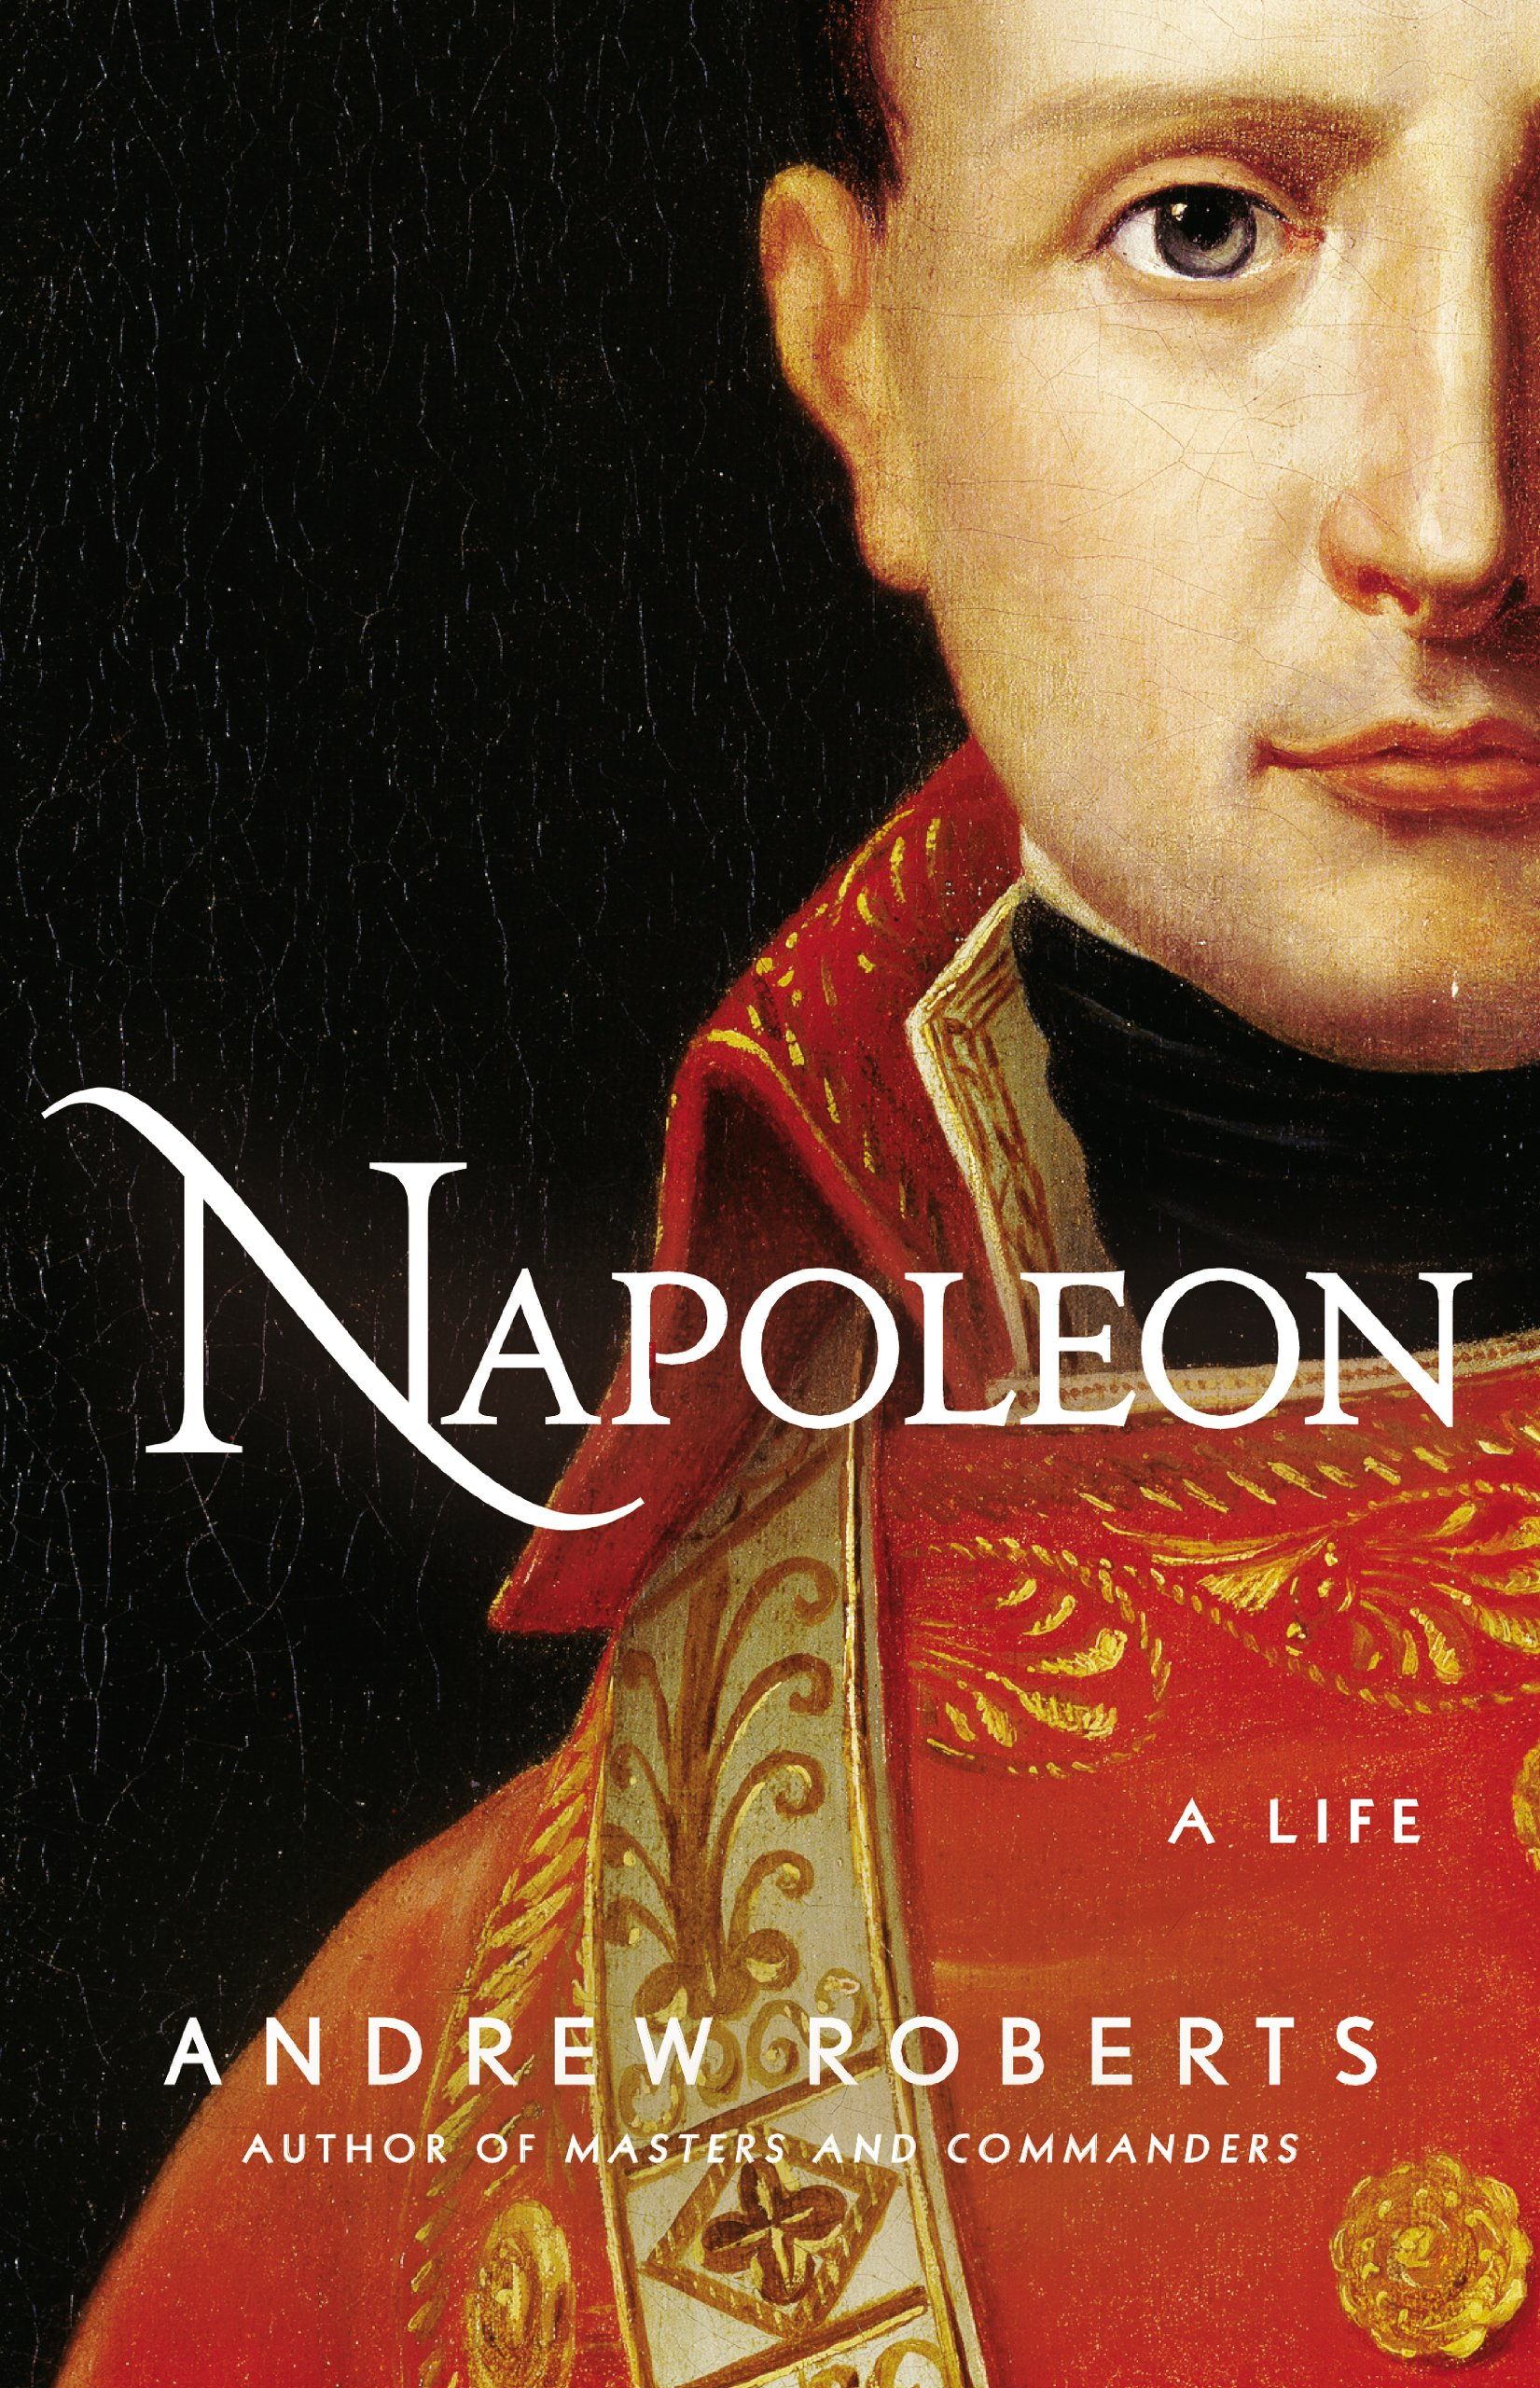 a biography of napoleon bonaparte the last enlightened despot What policies or accomplishments of napoleon's prove that he was in fact an enlightened despot.